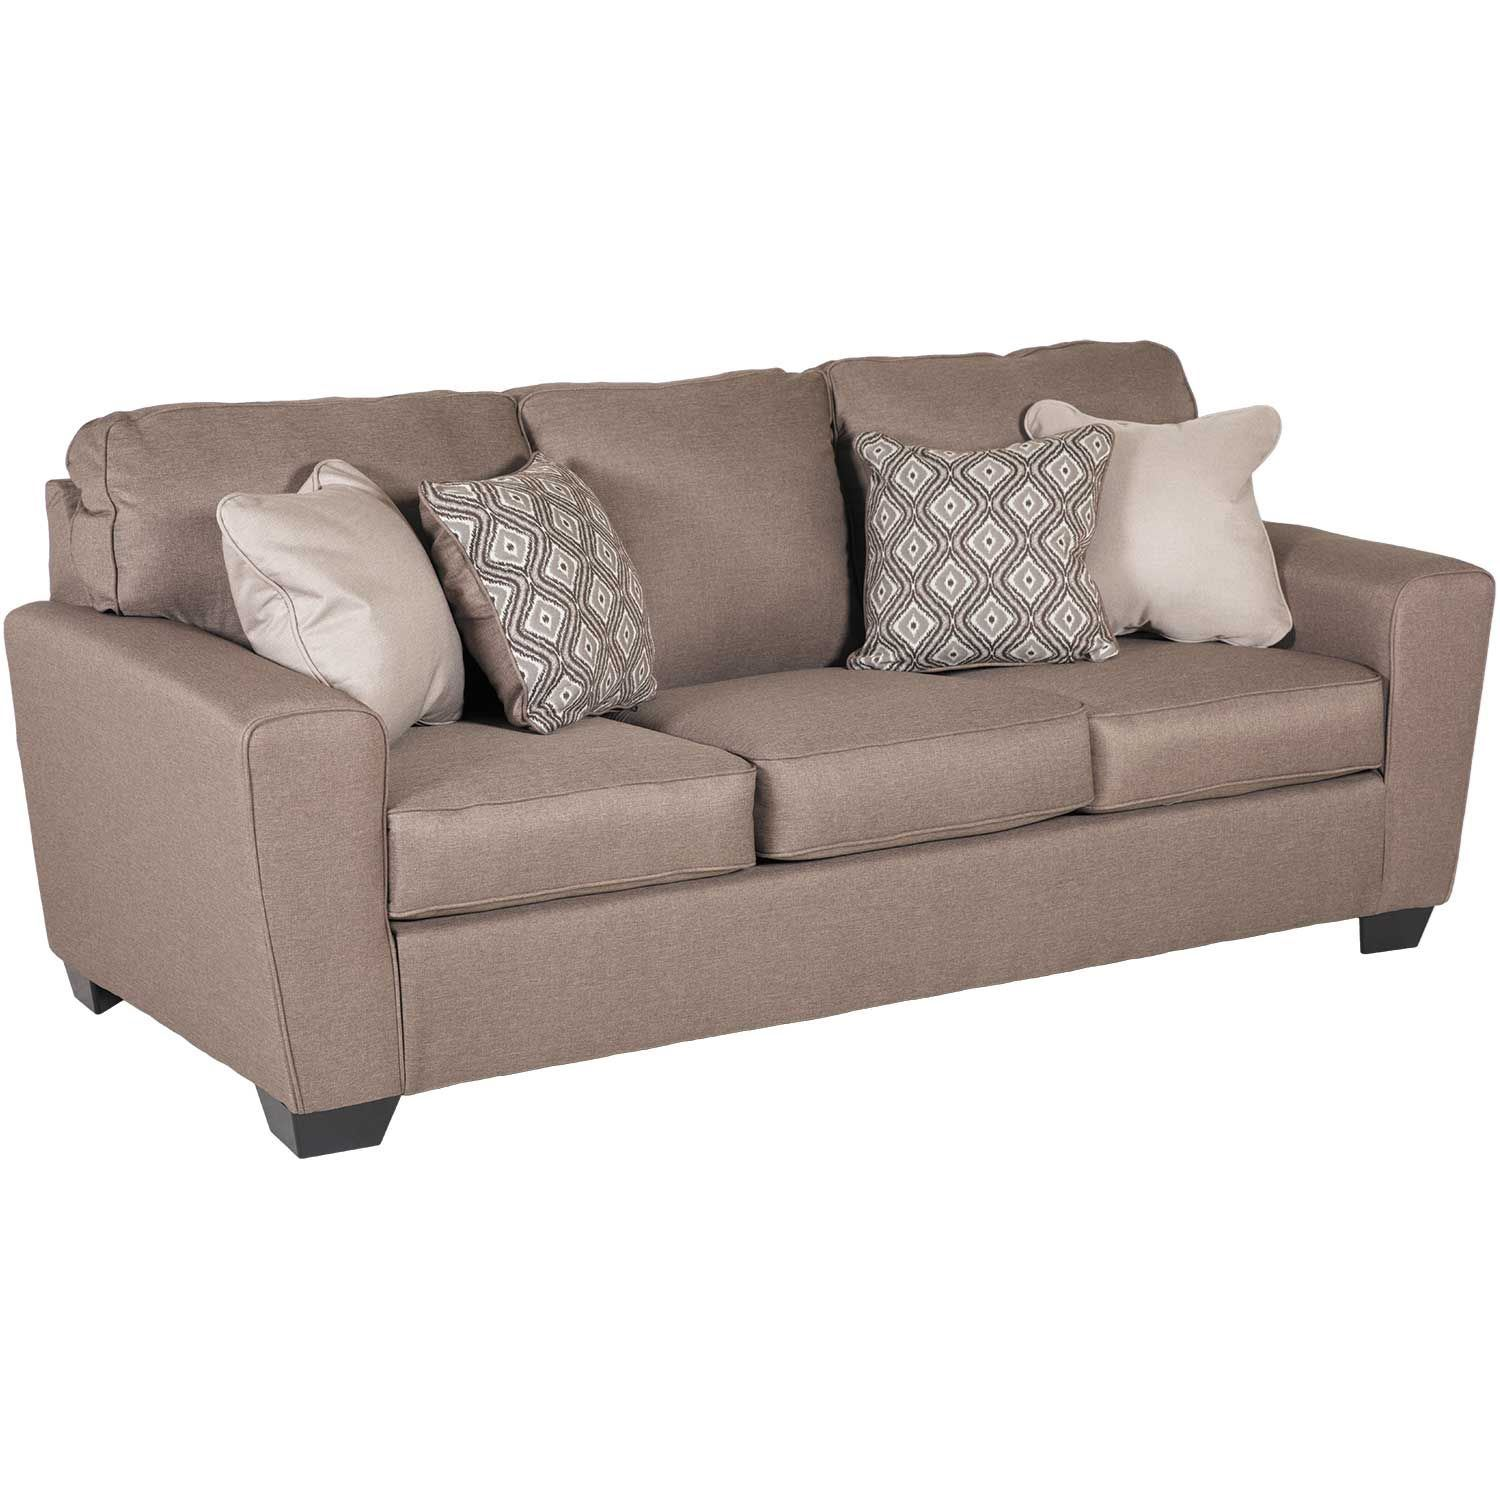 Sofa Queen Calicho Cashmere Queen Sleeper Sofa